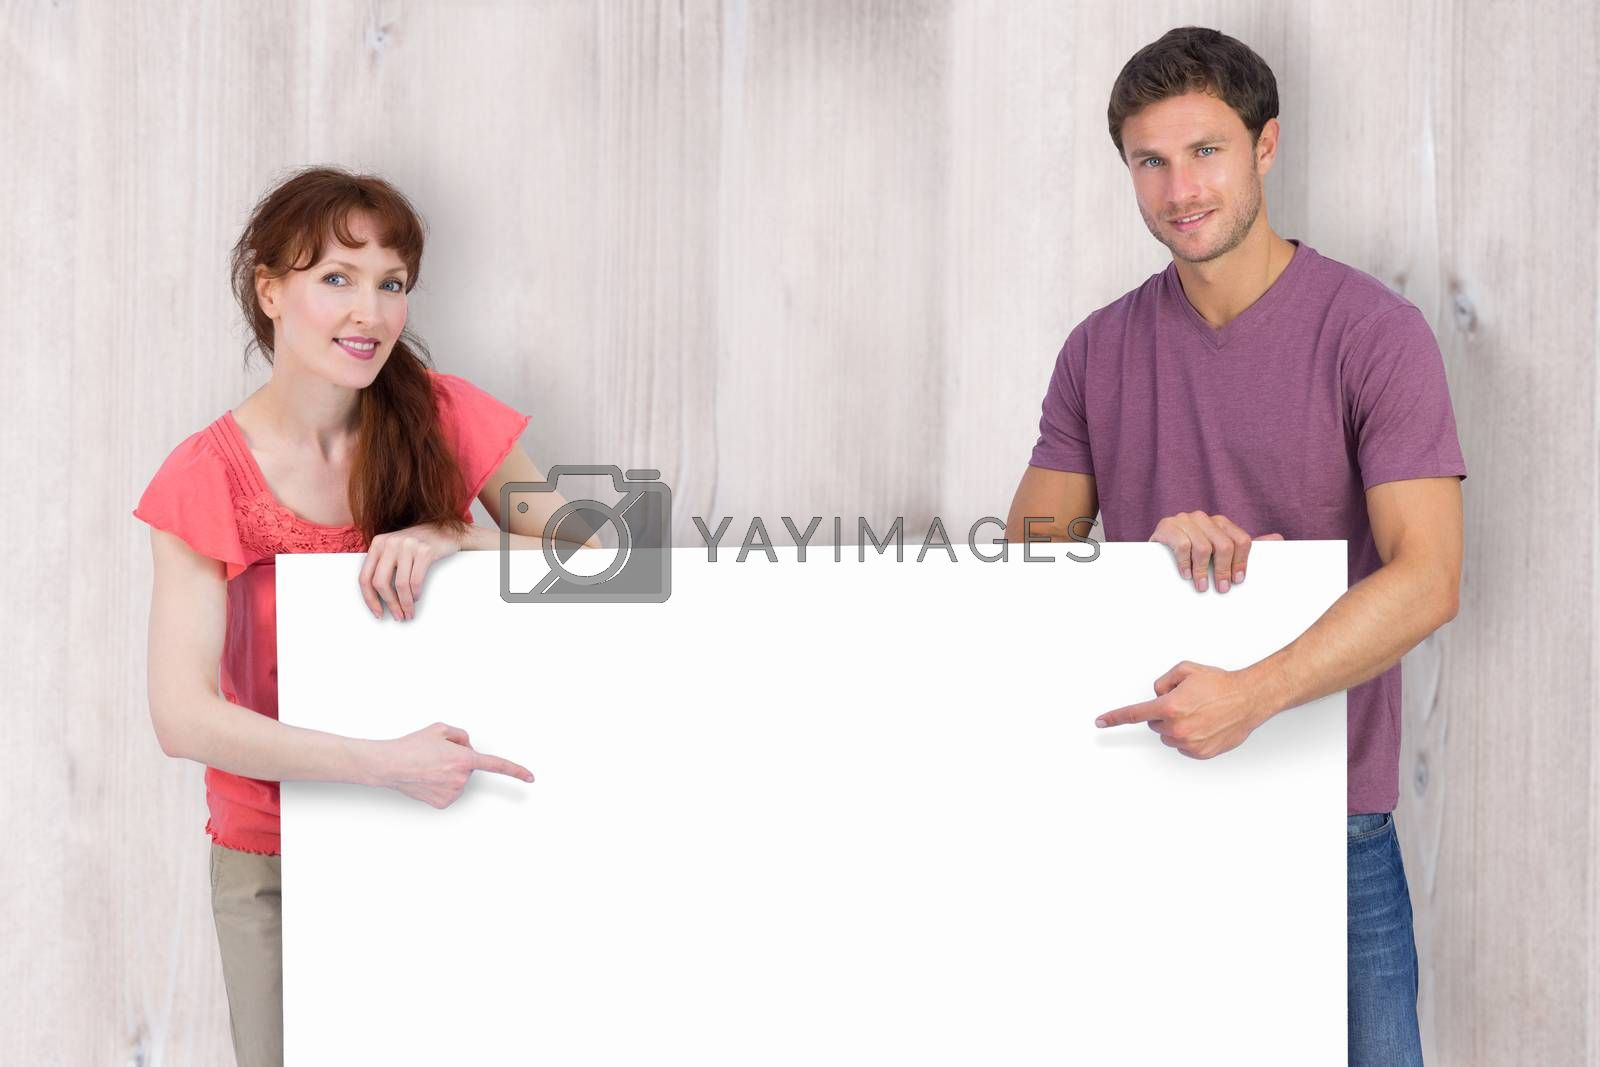 Couple looking at the camera against wooden planks